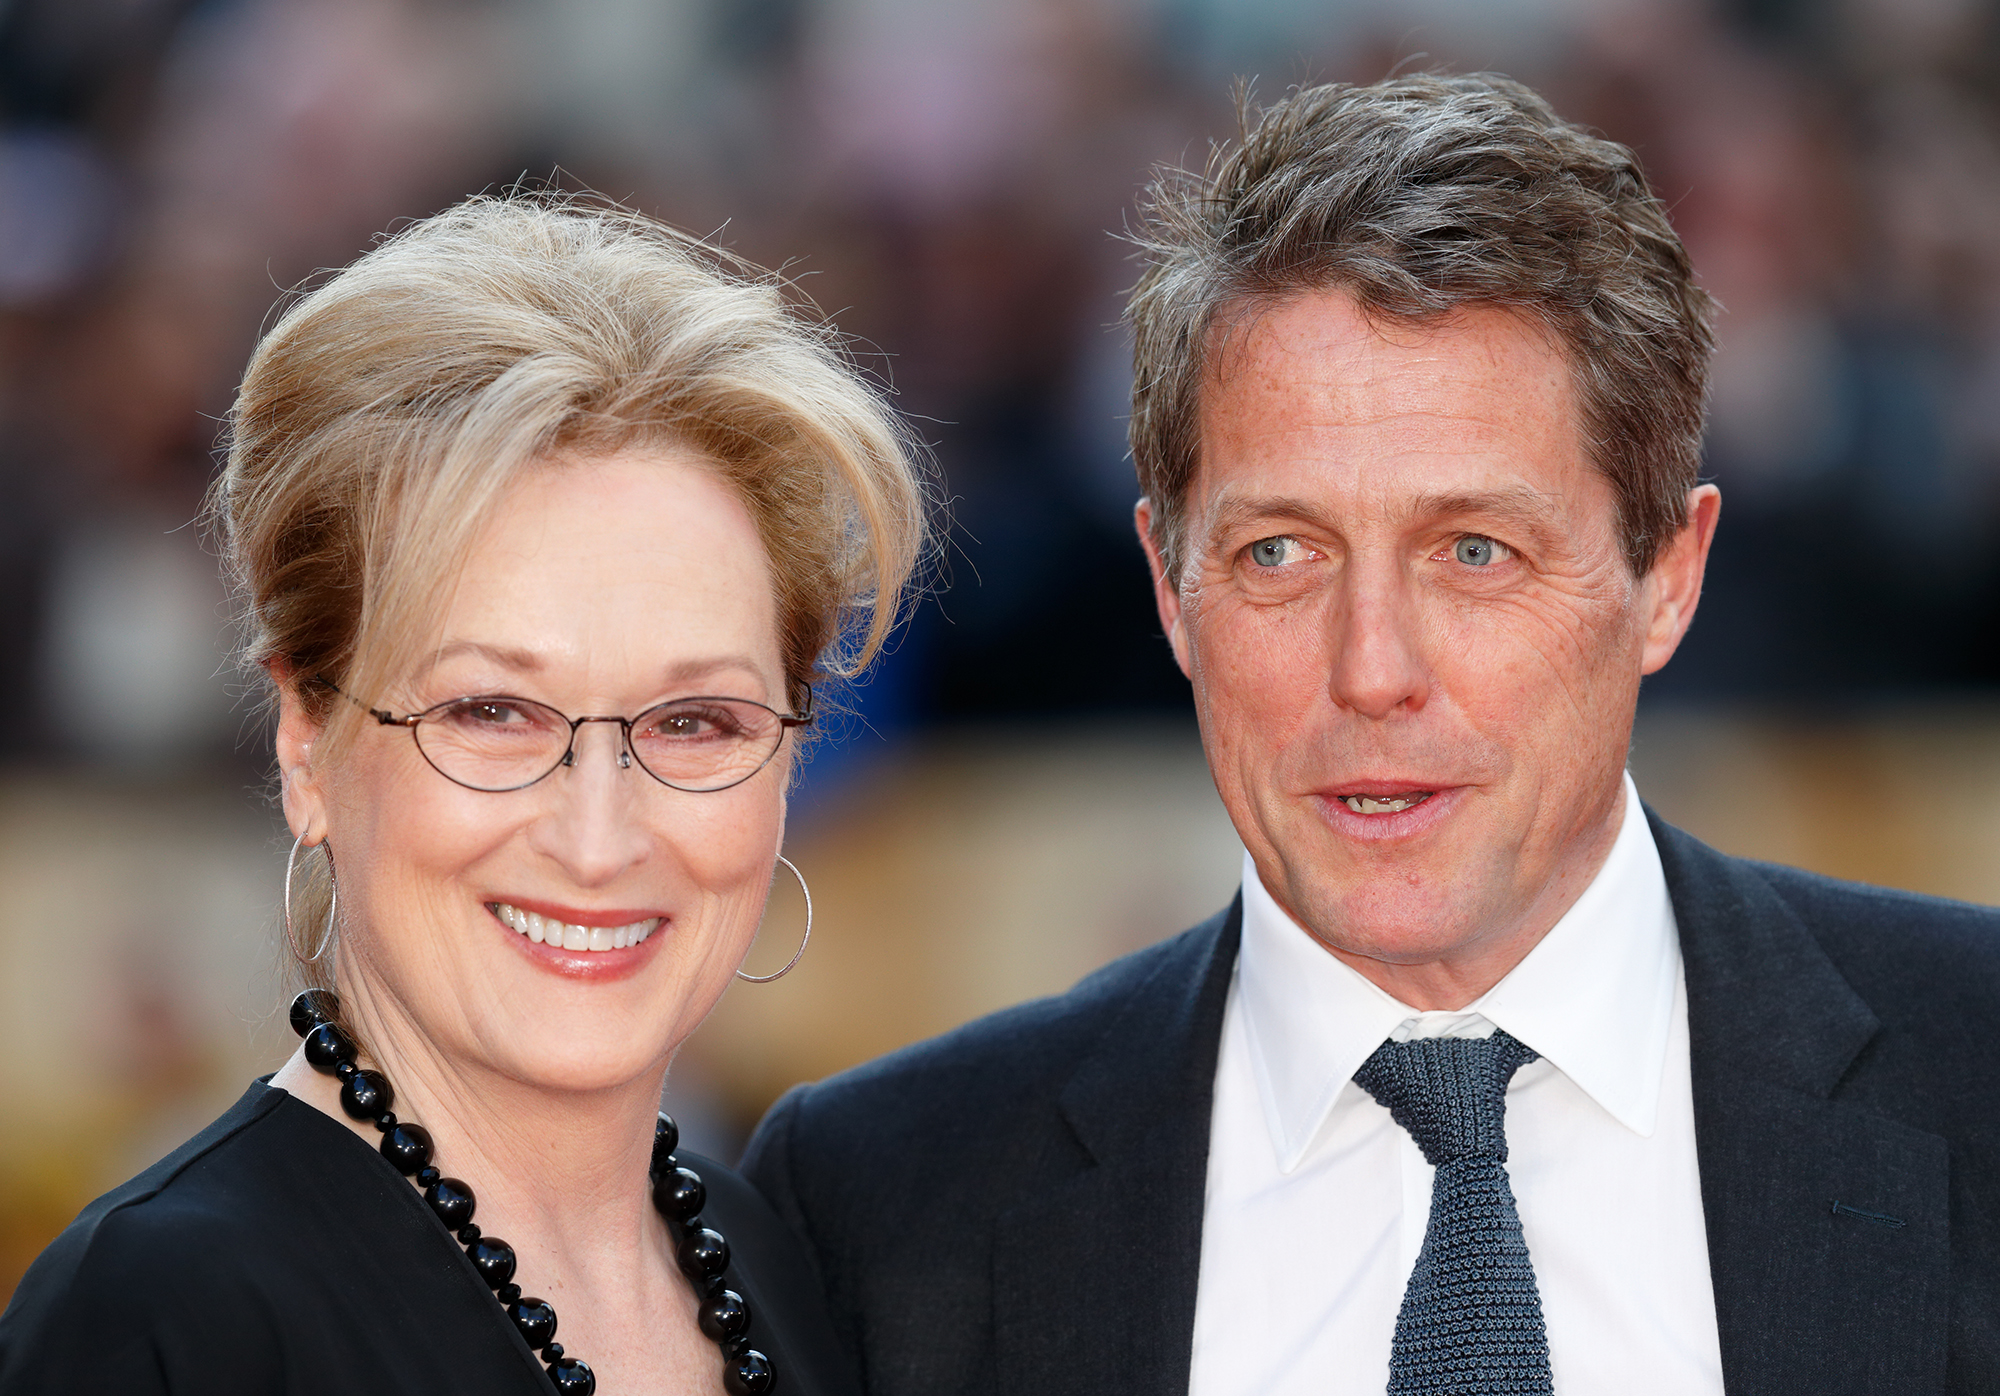 Meryl Streep and Hugh Grant arrive for the UK film premiere of 'Florence Foster Jenkins' at Odeon Leicester Square on April 12, 2016 in London, England. (Photo by Max Mumby/Indigo/Getty Images)